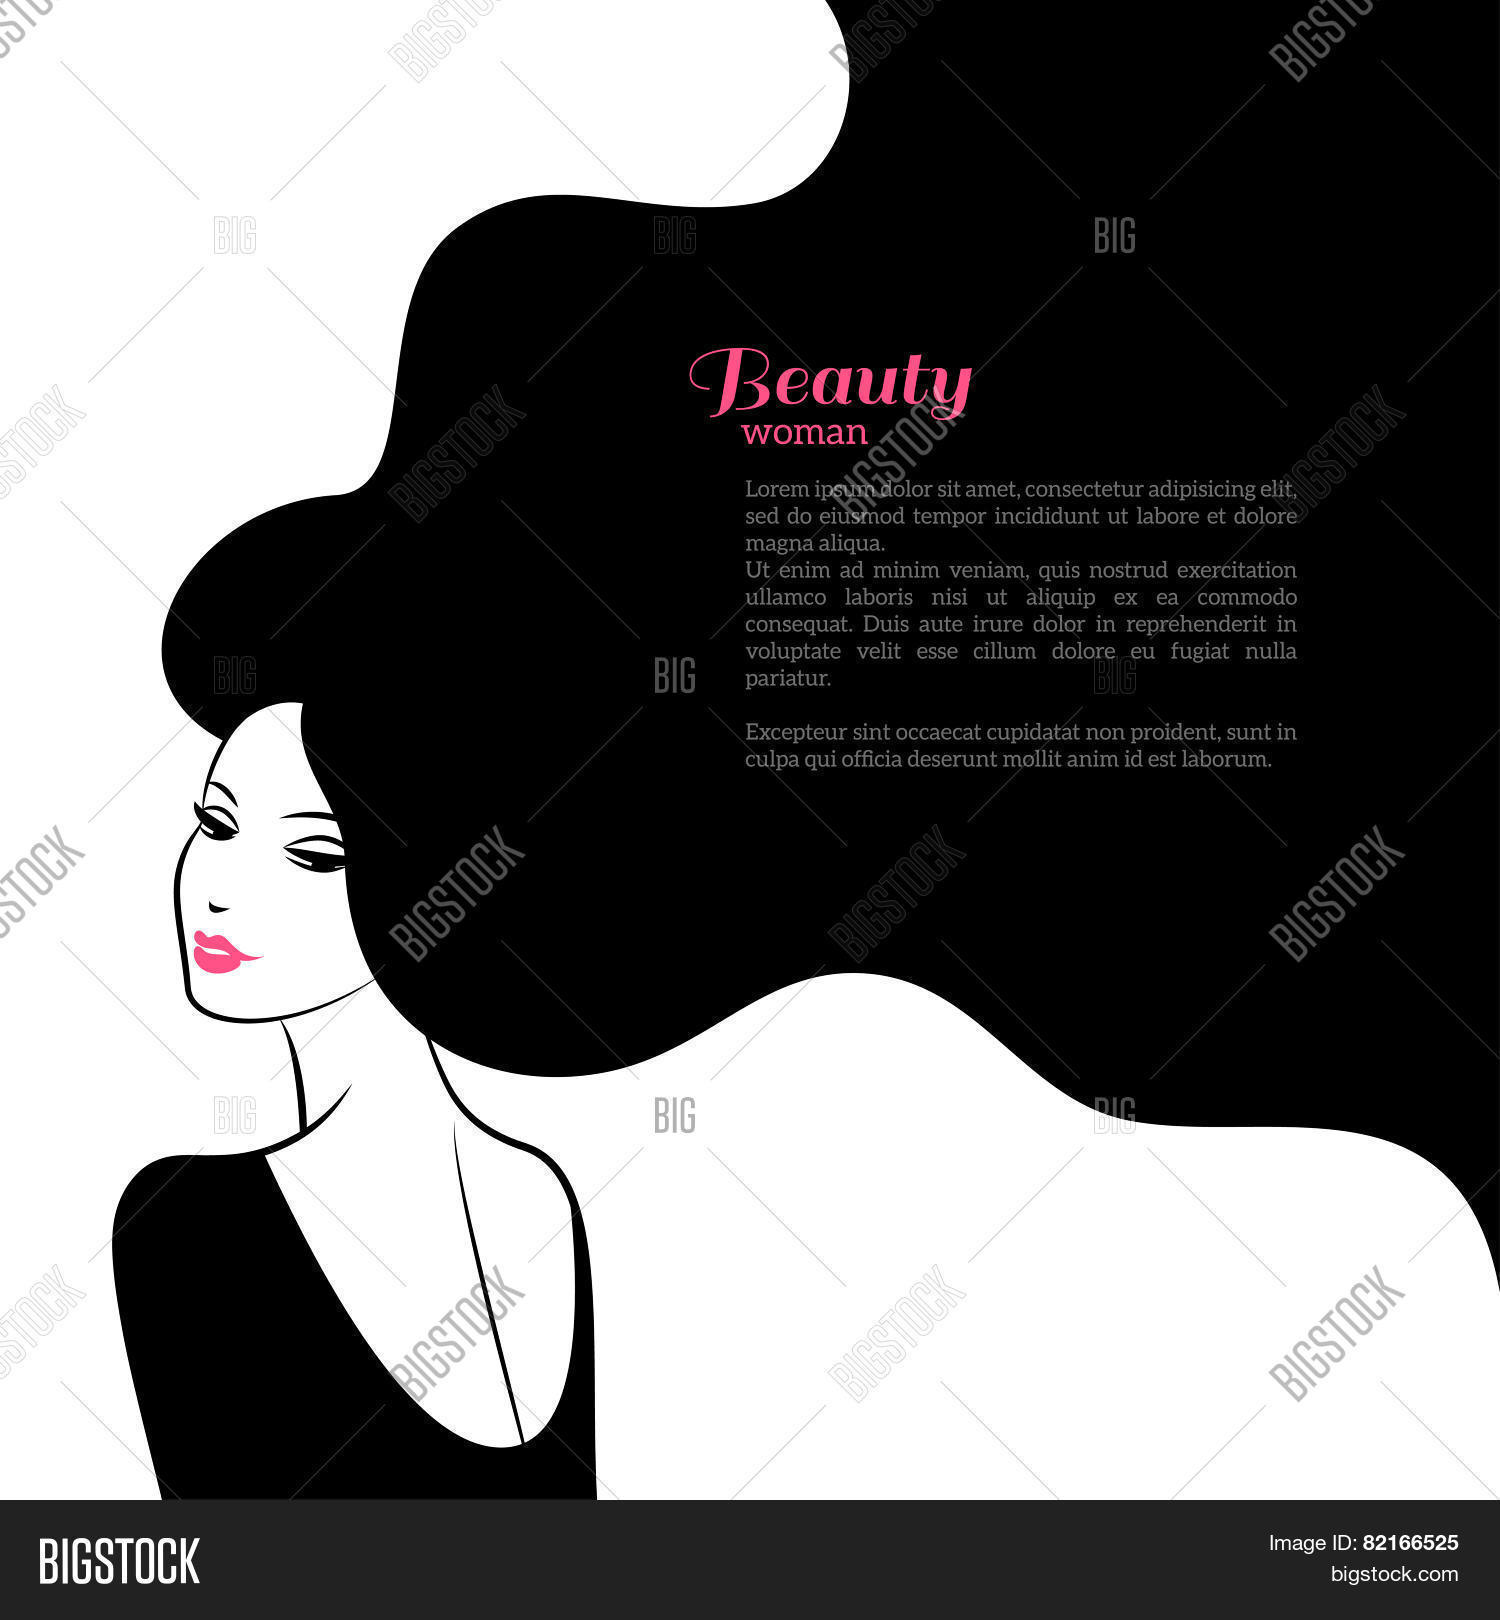 Abstract Fashion Woman With Long Hair Vector Illustration 82166525 Image Stock Photo